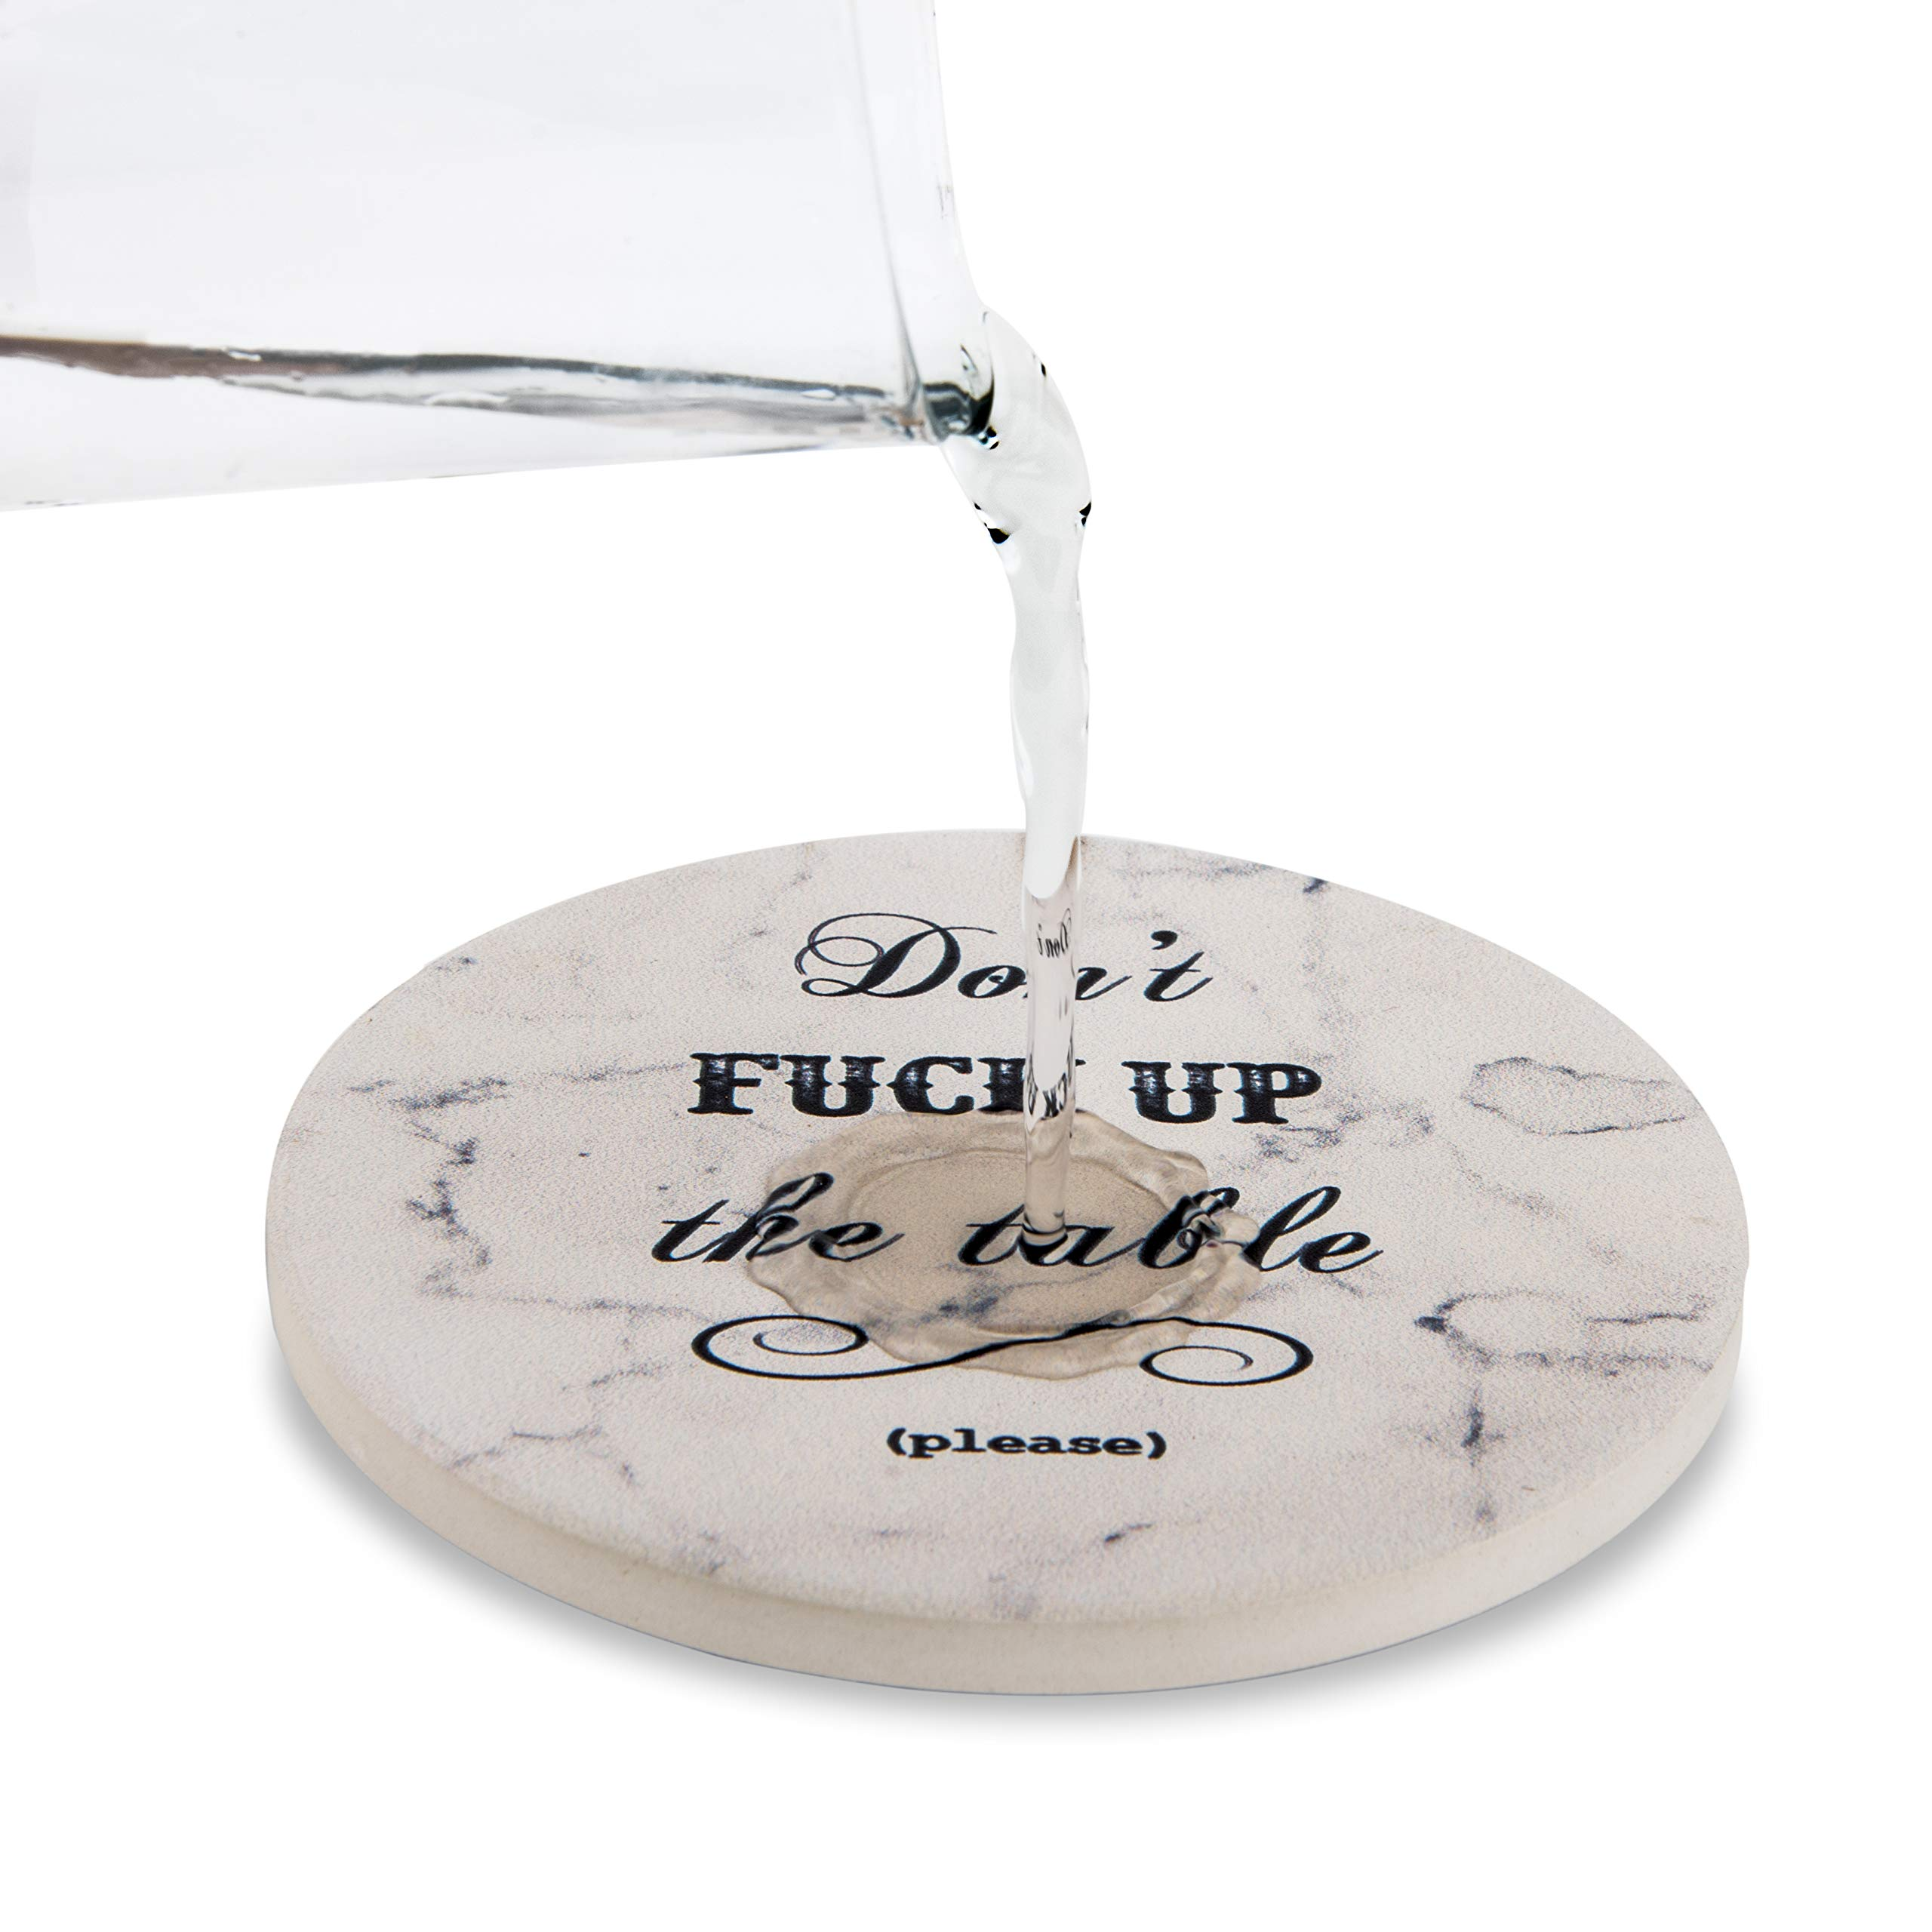 Urban Mosh Coasters for Drinks - Funny Absorbent Ceramic Stone Set of 6 White Marble Style with Cork Backing and Holder Included, Protect Your Furniture From Spills, Scratches, Water Rings and Damage by Urban Mosh (Image #7)